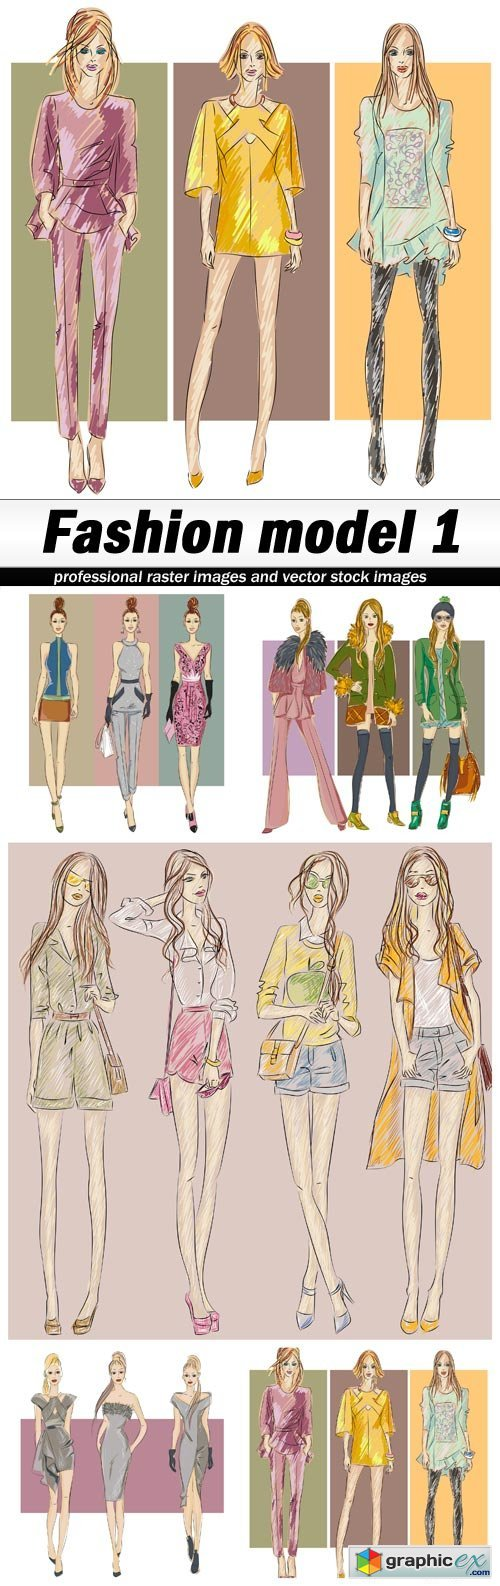 Fashion model 1 - 5 EPS